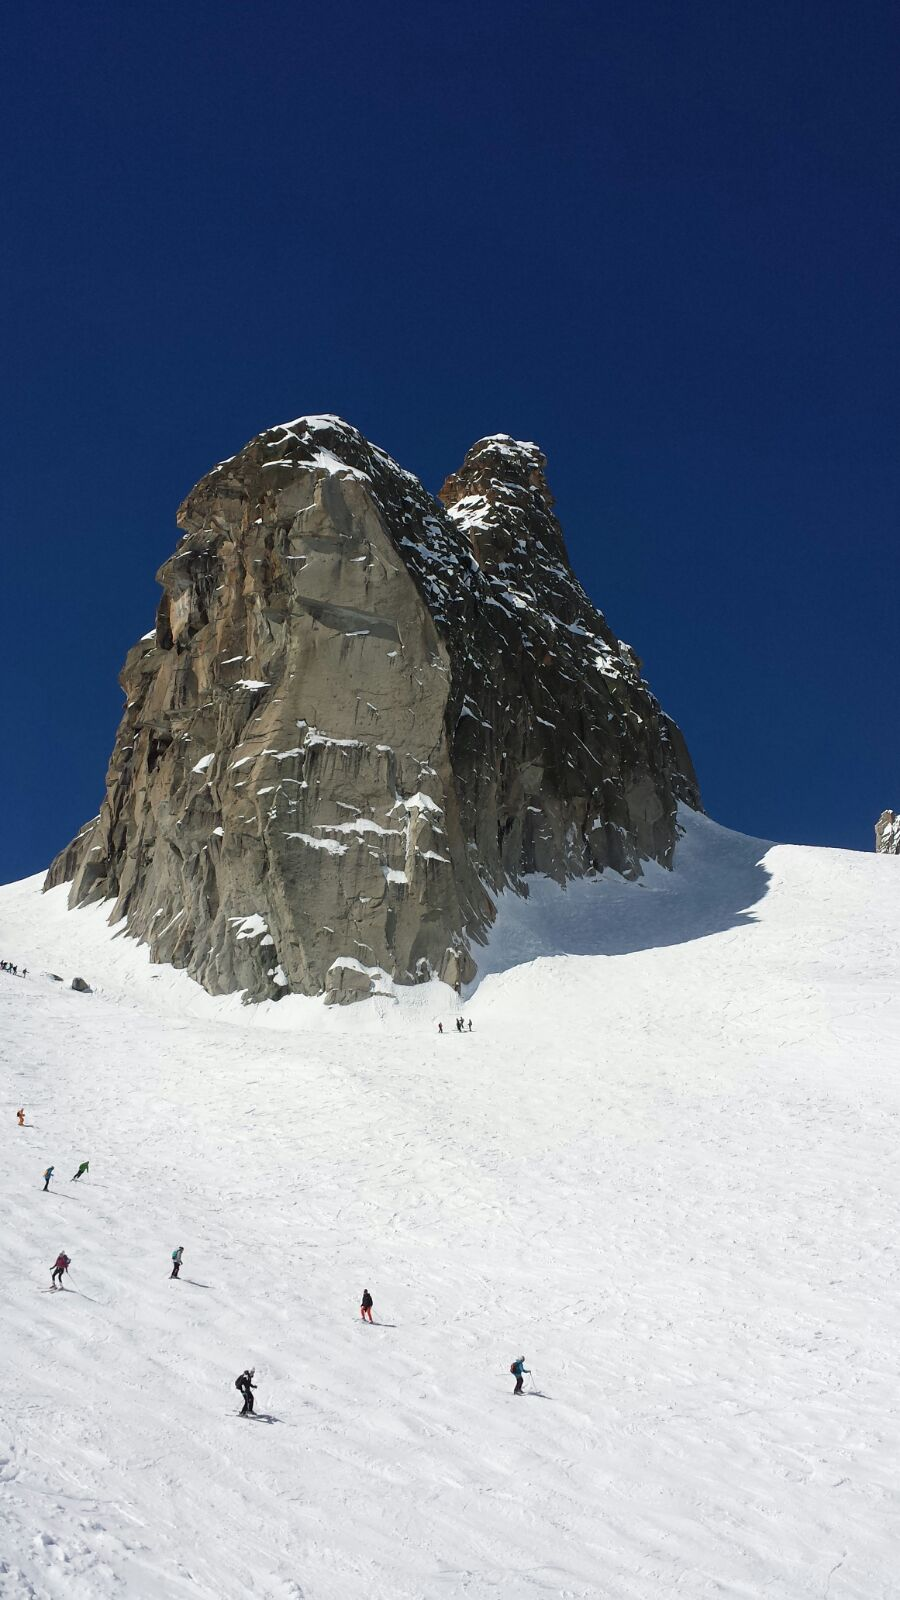 vallee blanche guide alpine proup (15)